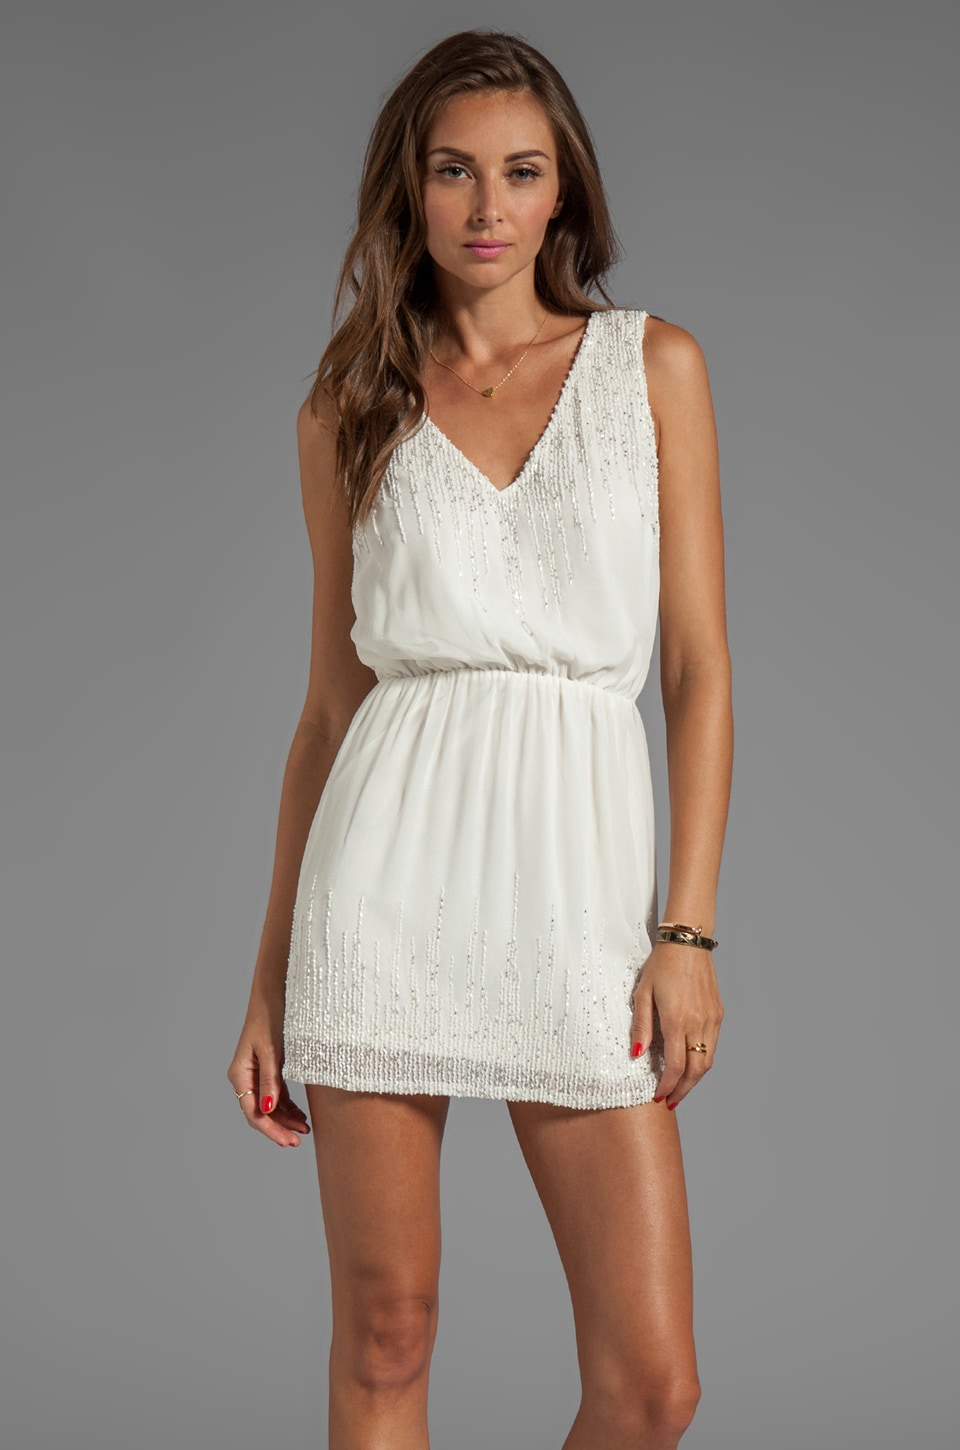 Yumi Kim Penelope Dress in White Combo